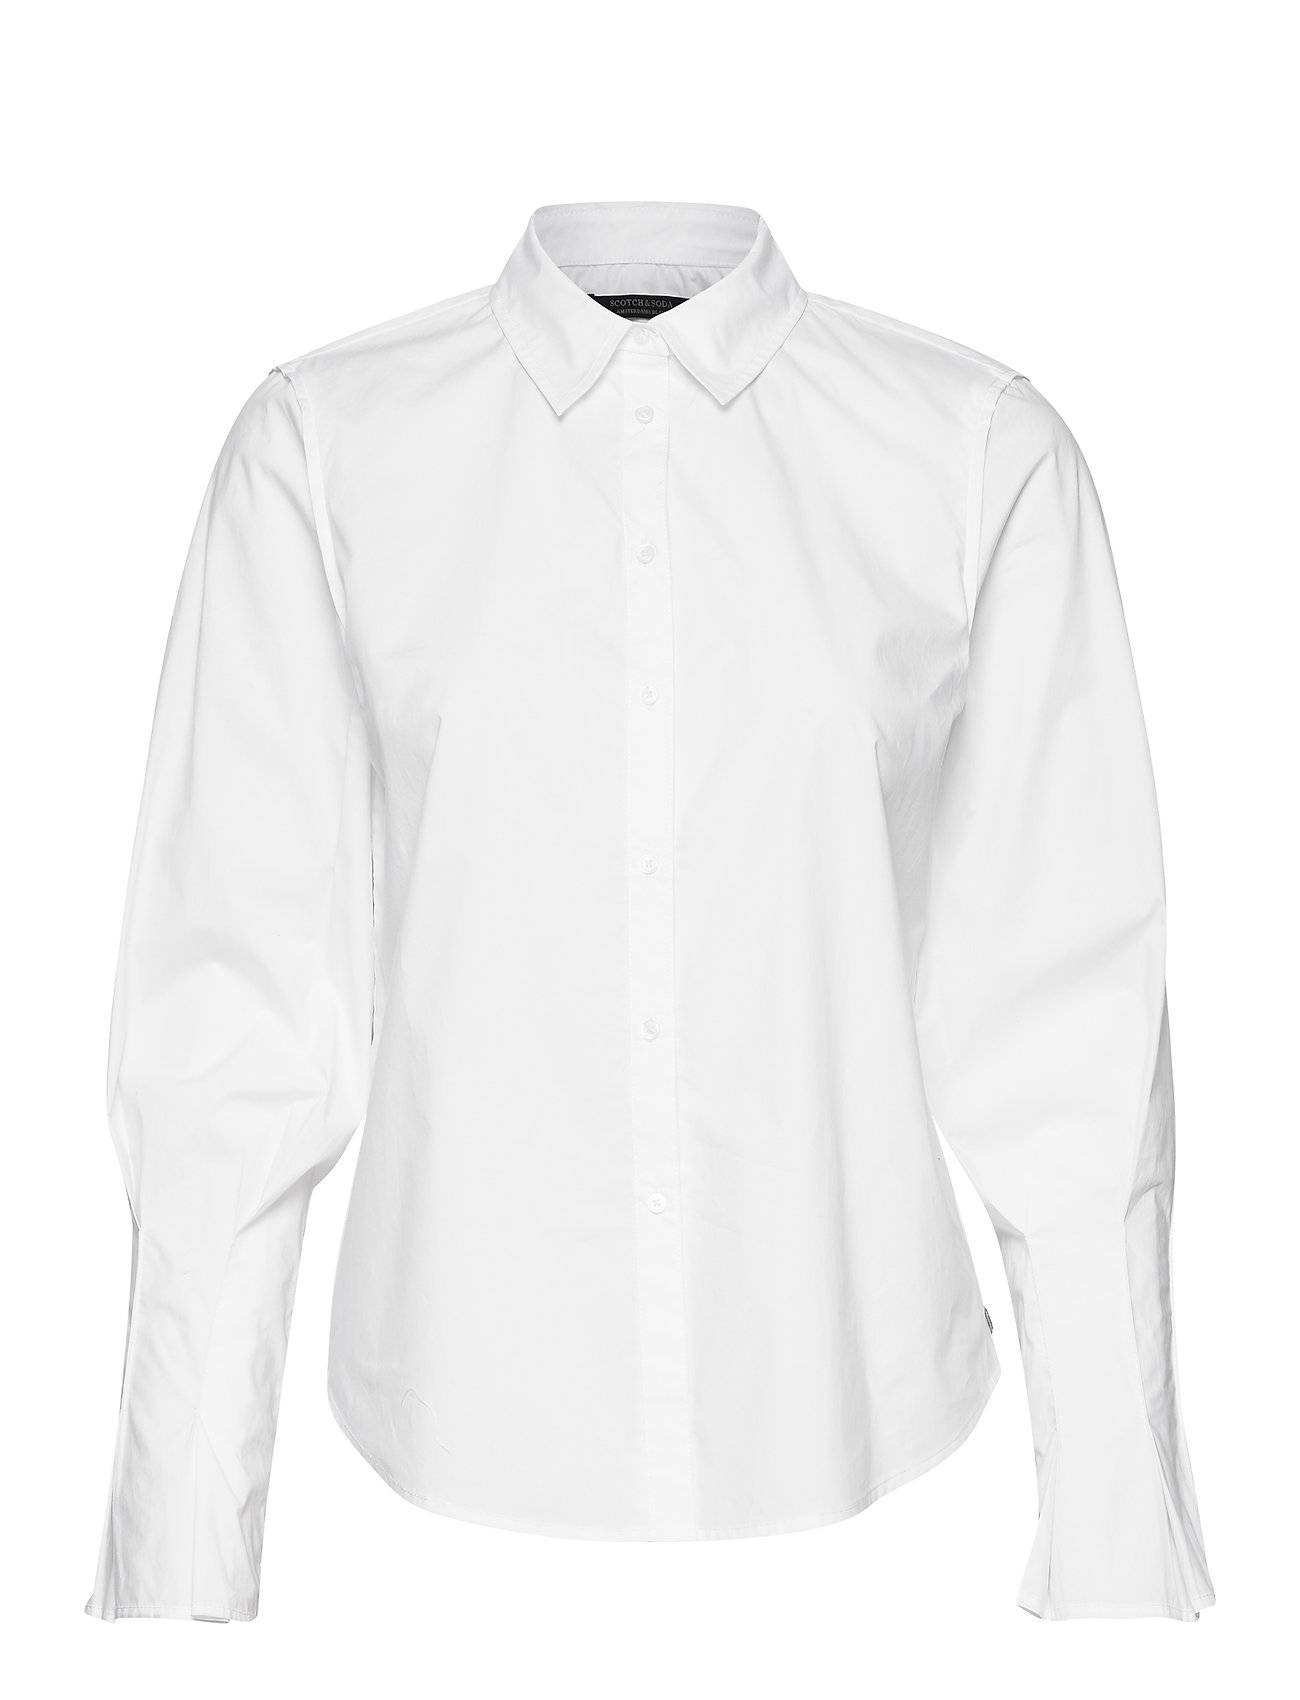 Image of Scotch & Soda Clean Shirt With Special Pleated Sleeves Pitkähihainen Paita Valkoinen Scotch & Soda